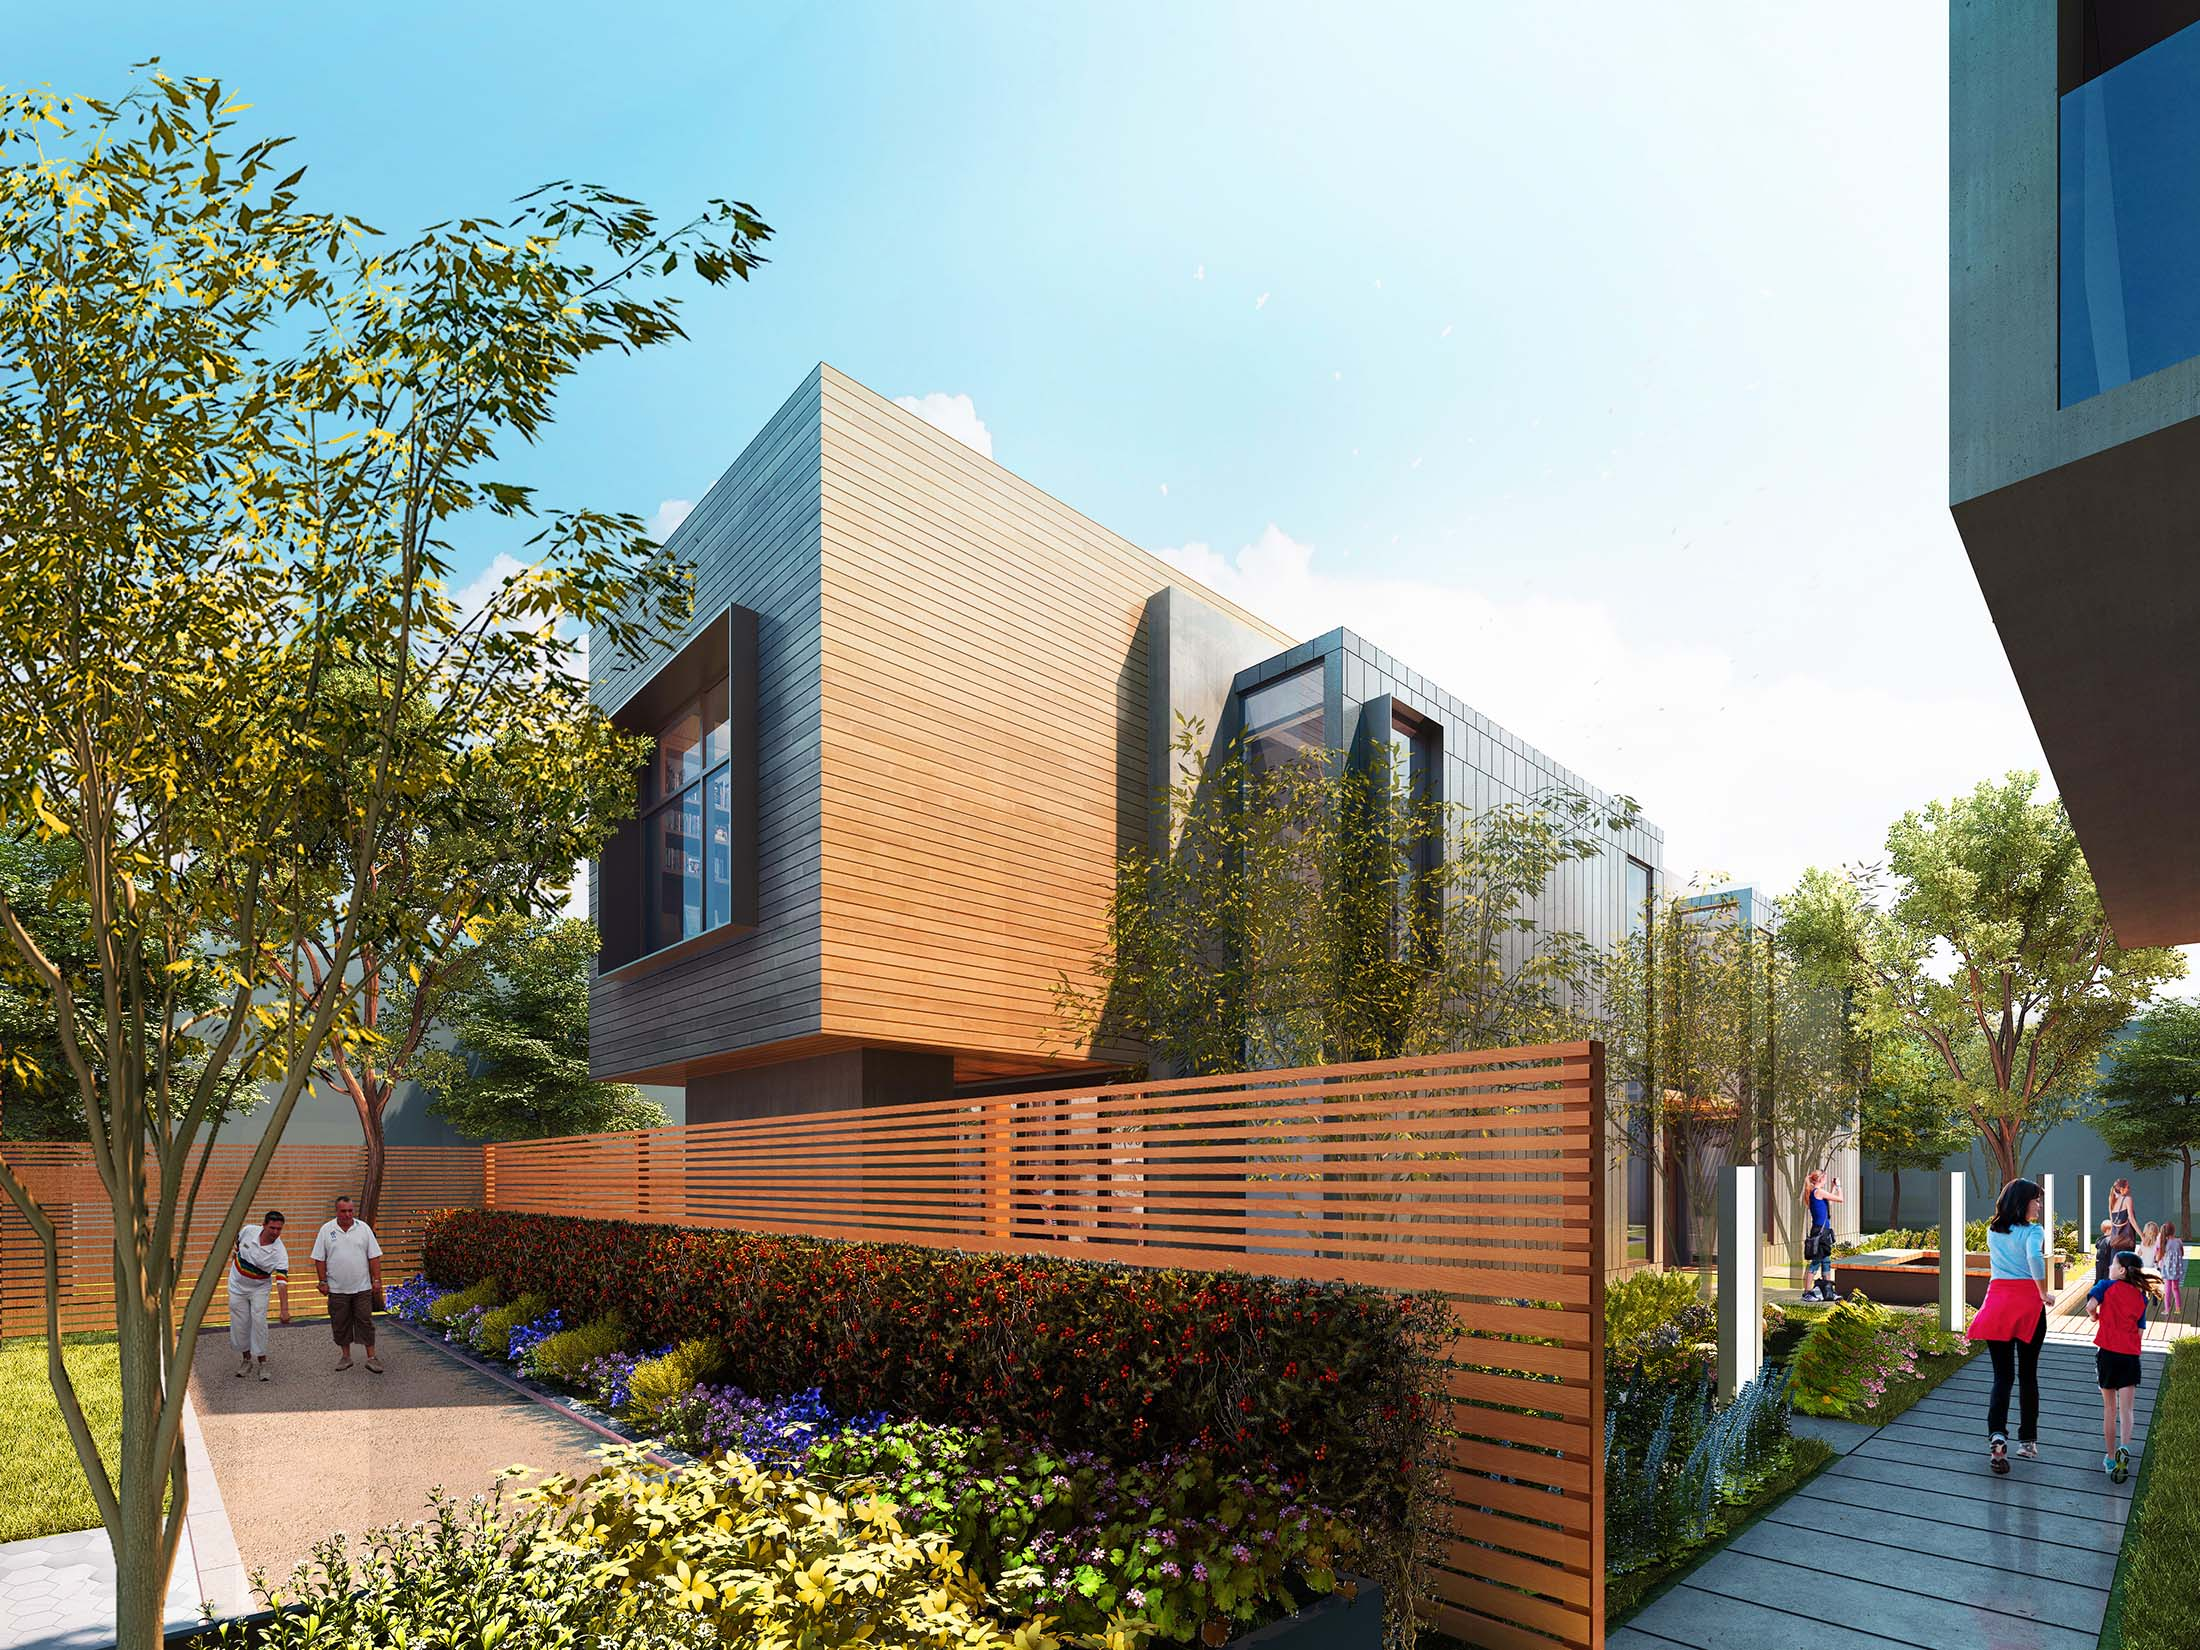 Entrance to 650 Live Oak Menlo Park mixed-use office residential architecture project ©brick-inc